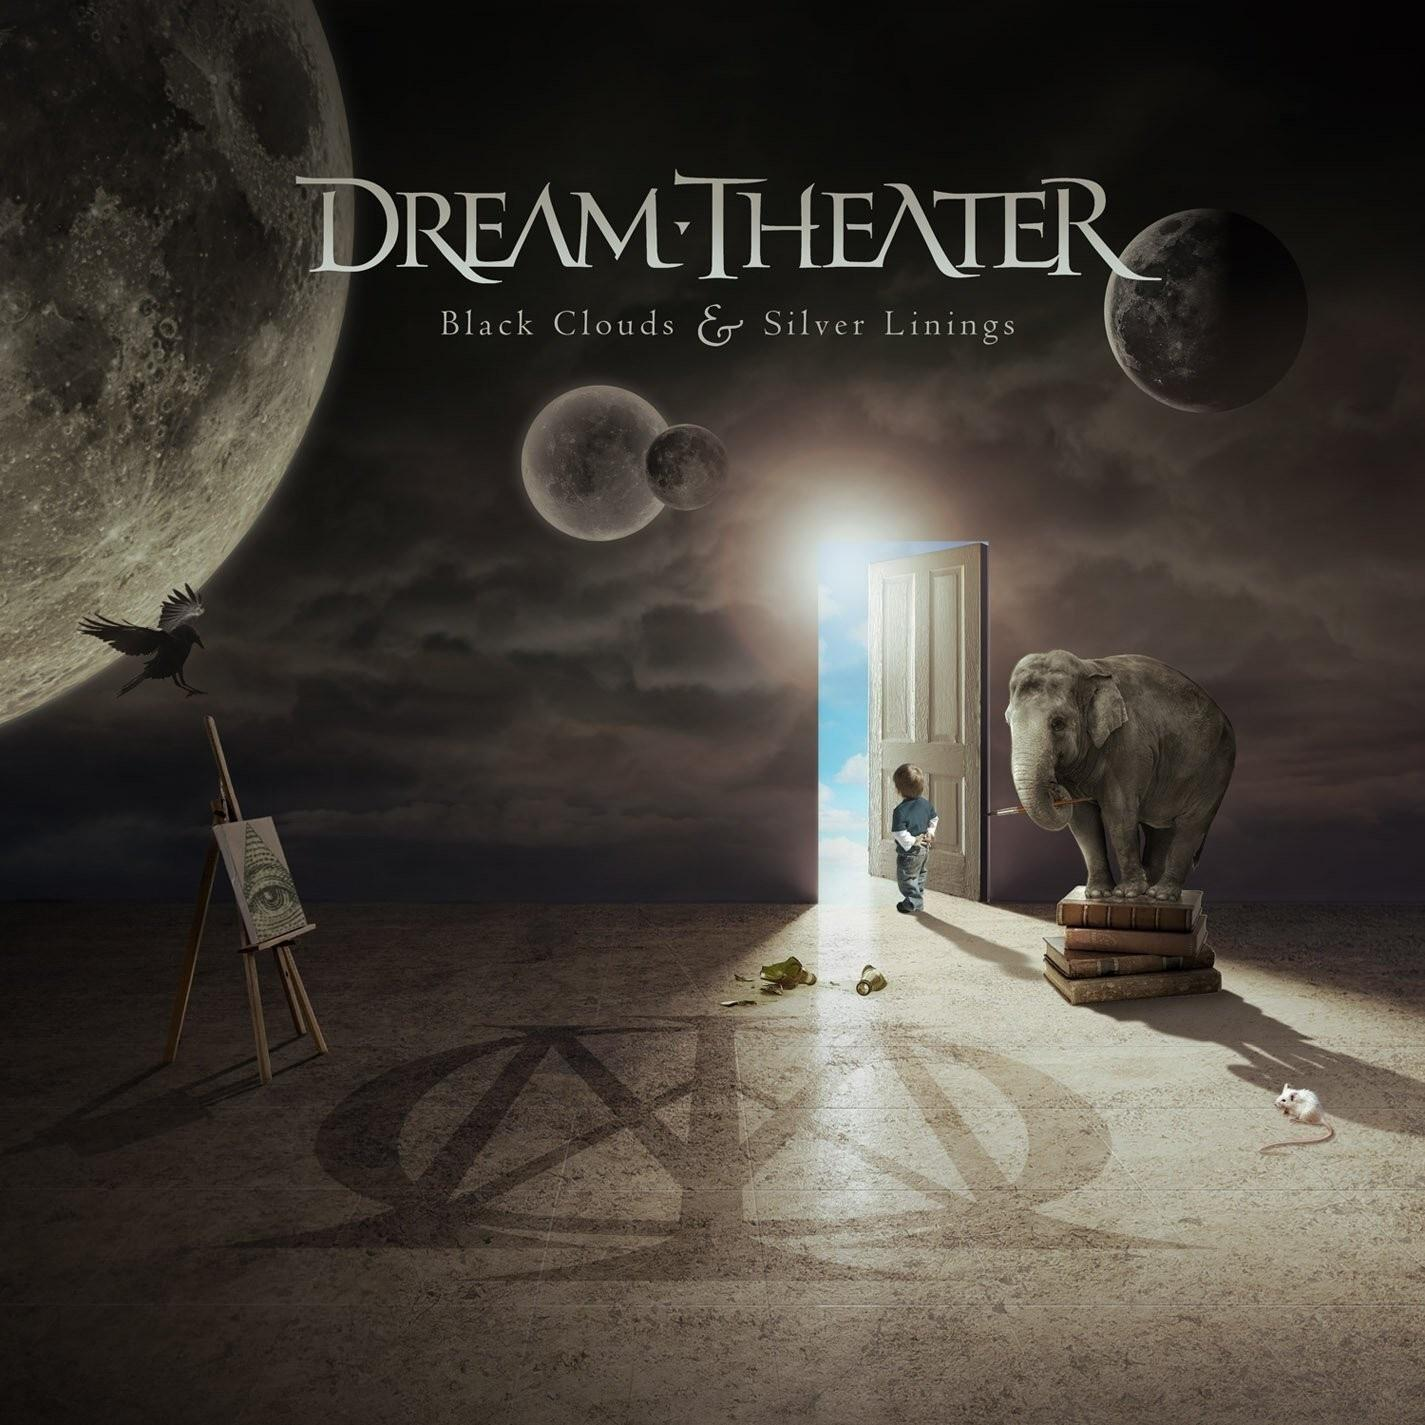 Dream Theater - Black Clouds & Silver Linings - 2009